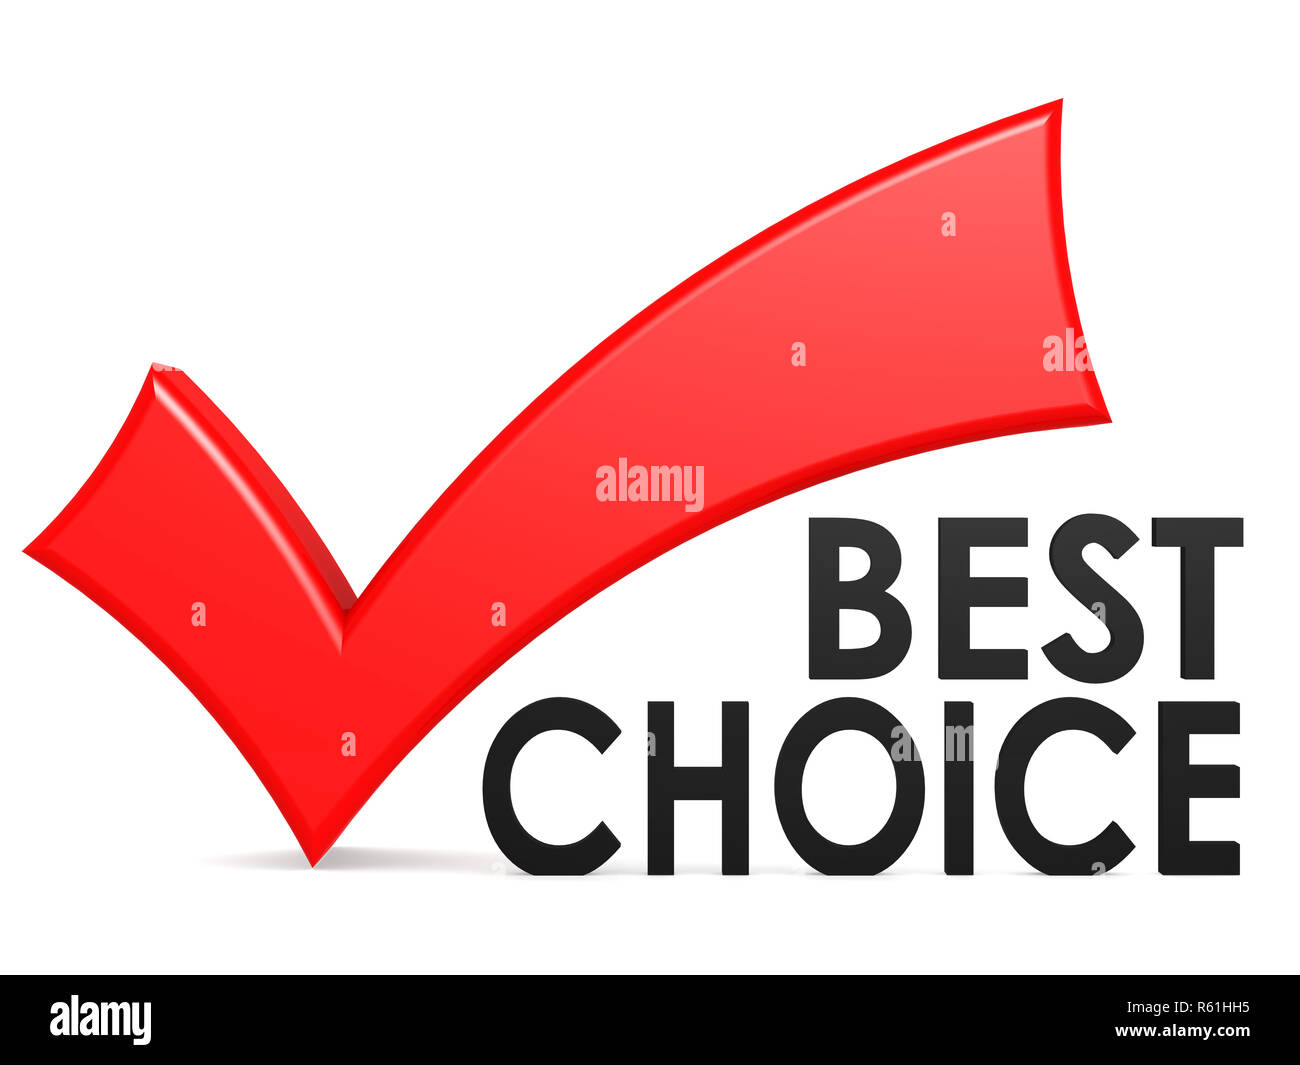 Best choice word with red check mark - Stock Image